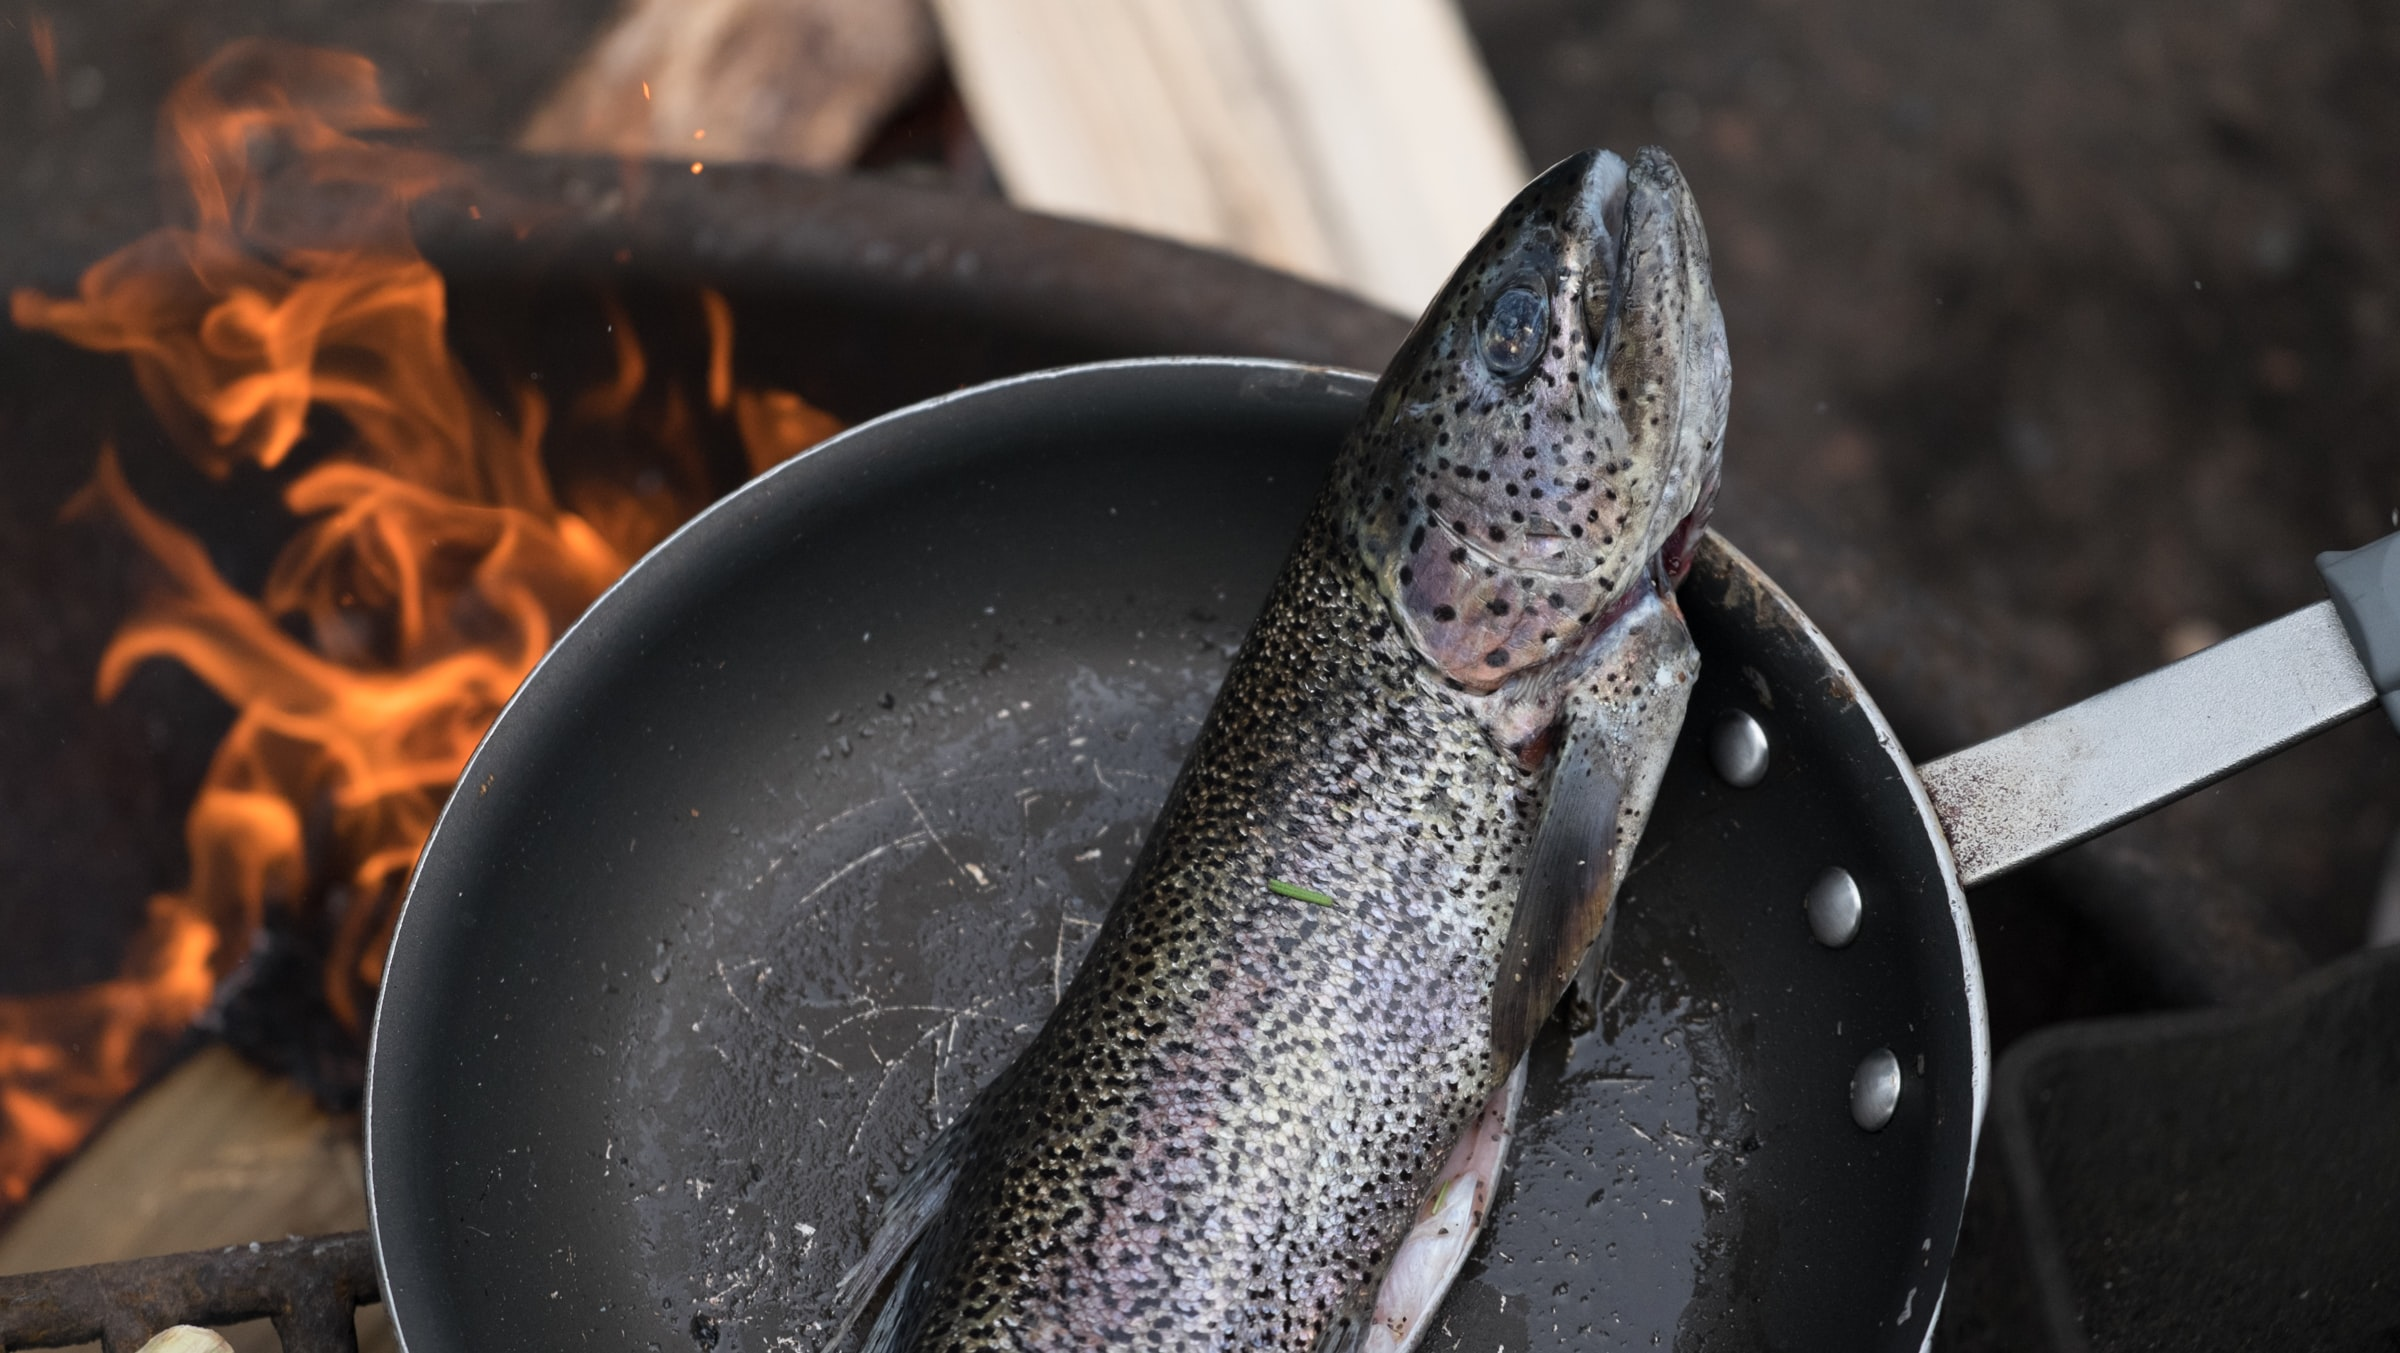 Freshly caught trout cooking in a skillet over an open flame